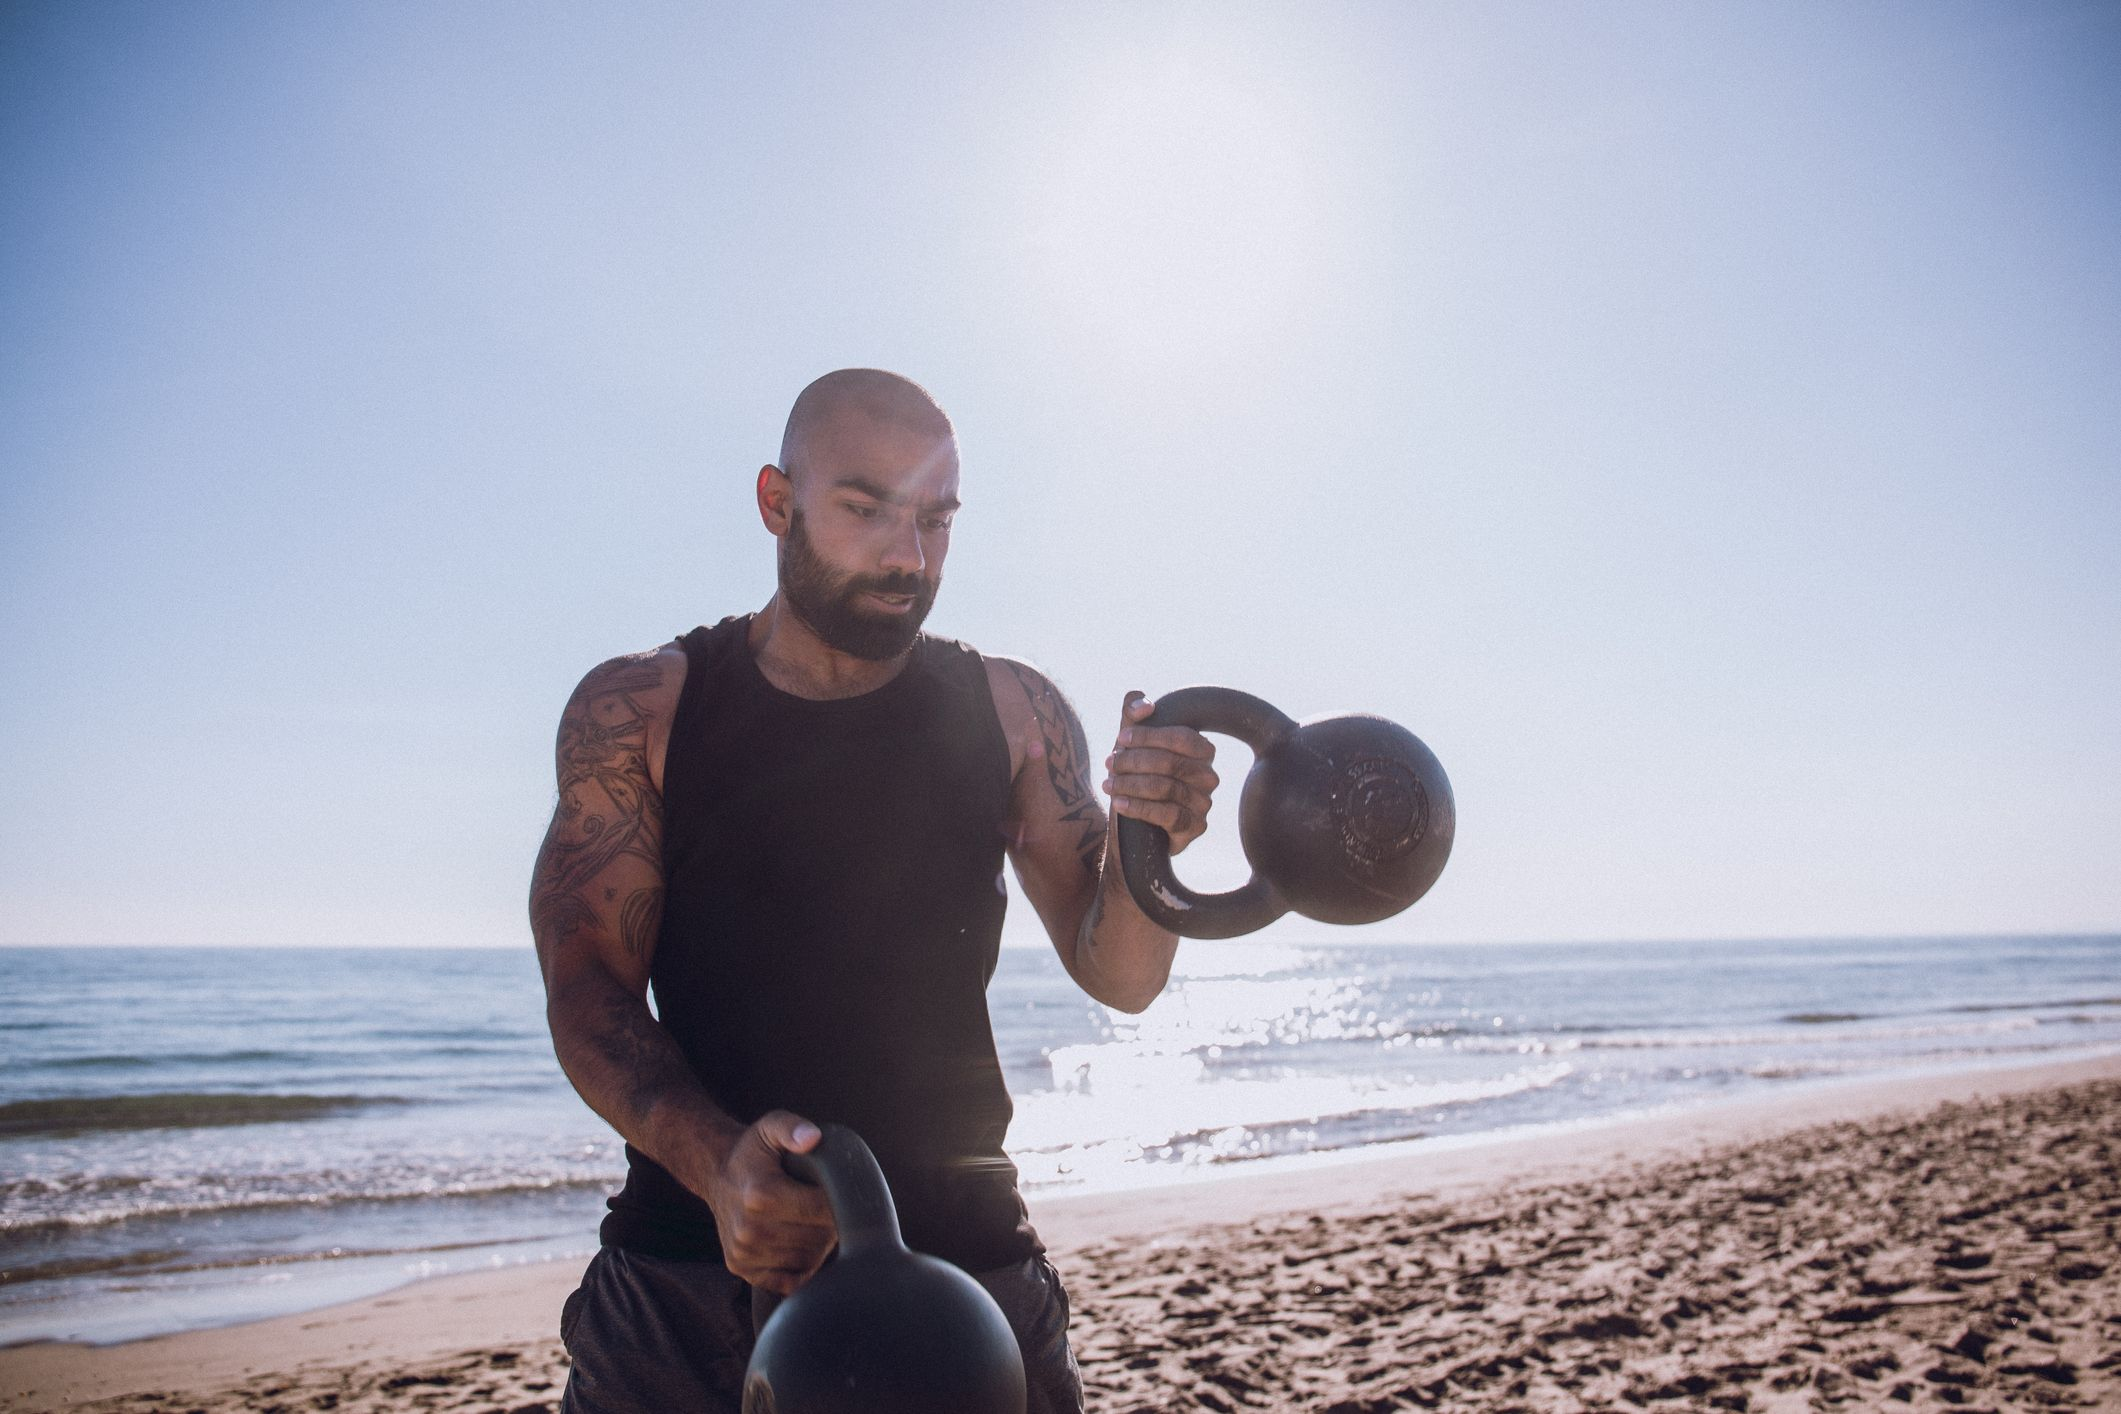 This 3-Move Push-Pull Kettlebell Workout Hits Your Whole Body